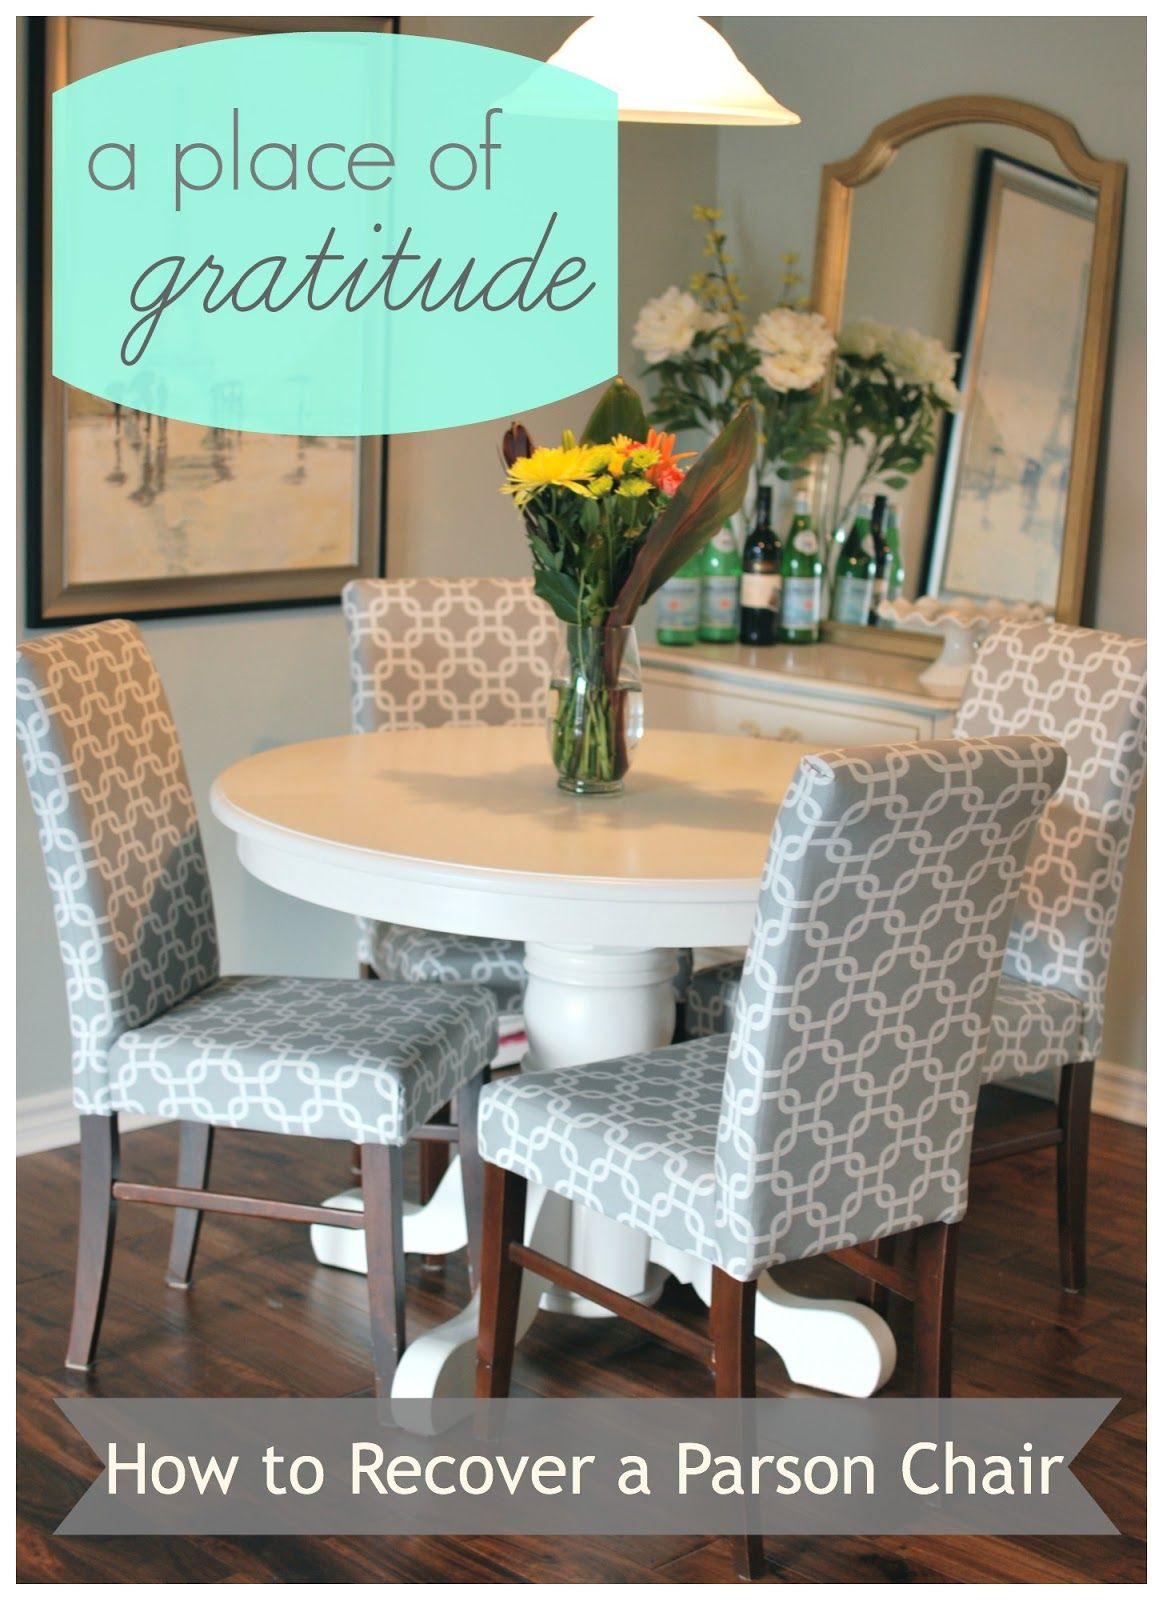 A place of gratitude How to Recover a Parson Chair Recovering